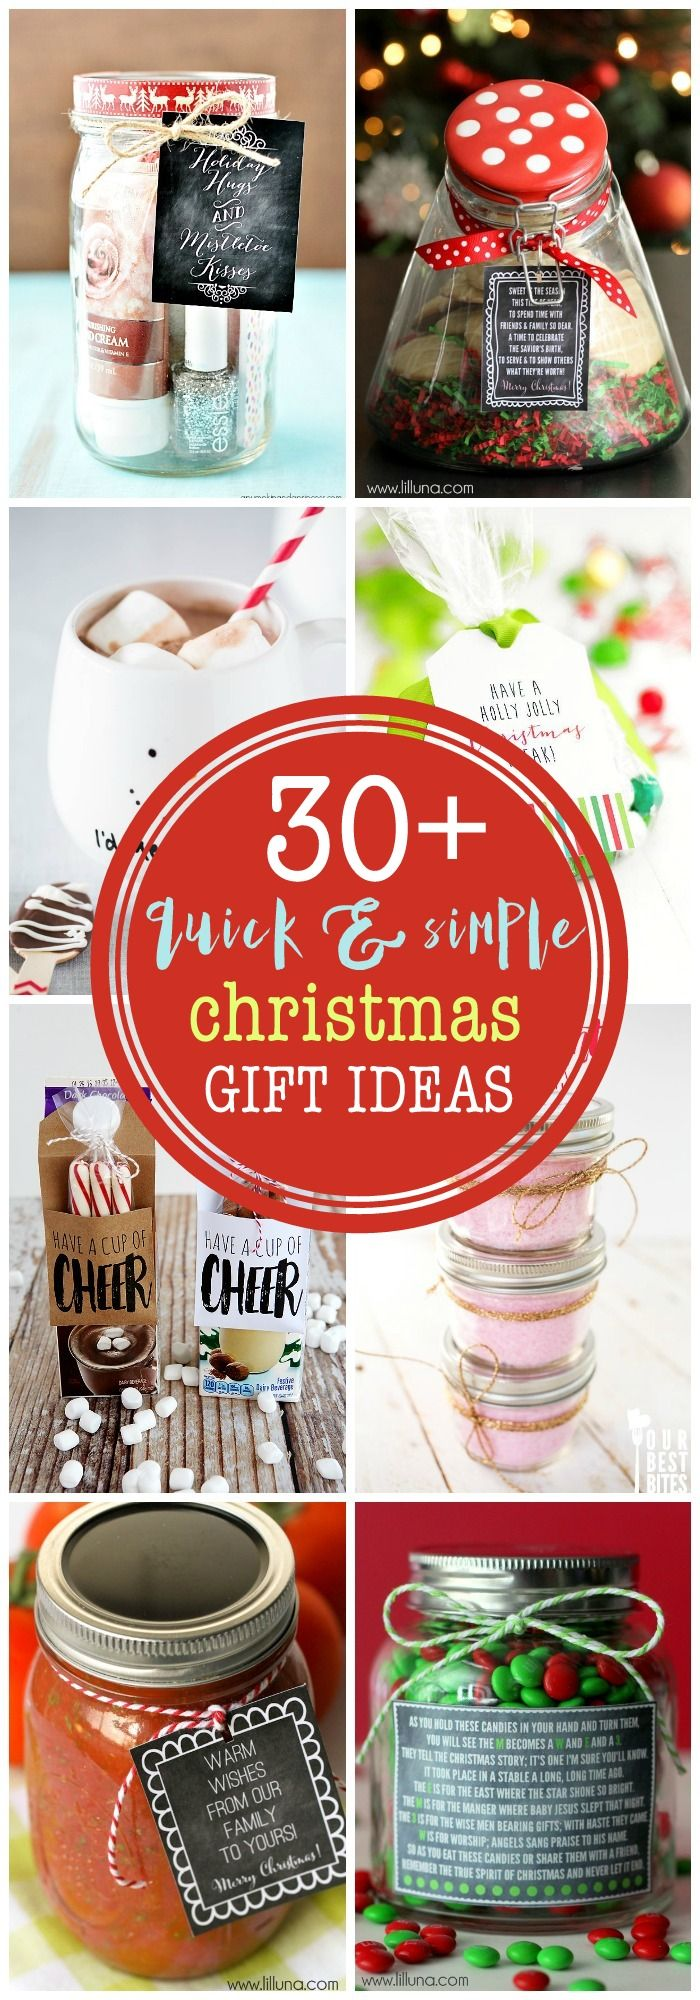 Need some last minute gift ideas that are cute and inexpensive? Look no further! This is a great collection of quick and cute gifts perfect for neighbors, friends and teachers!